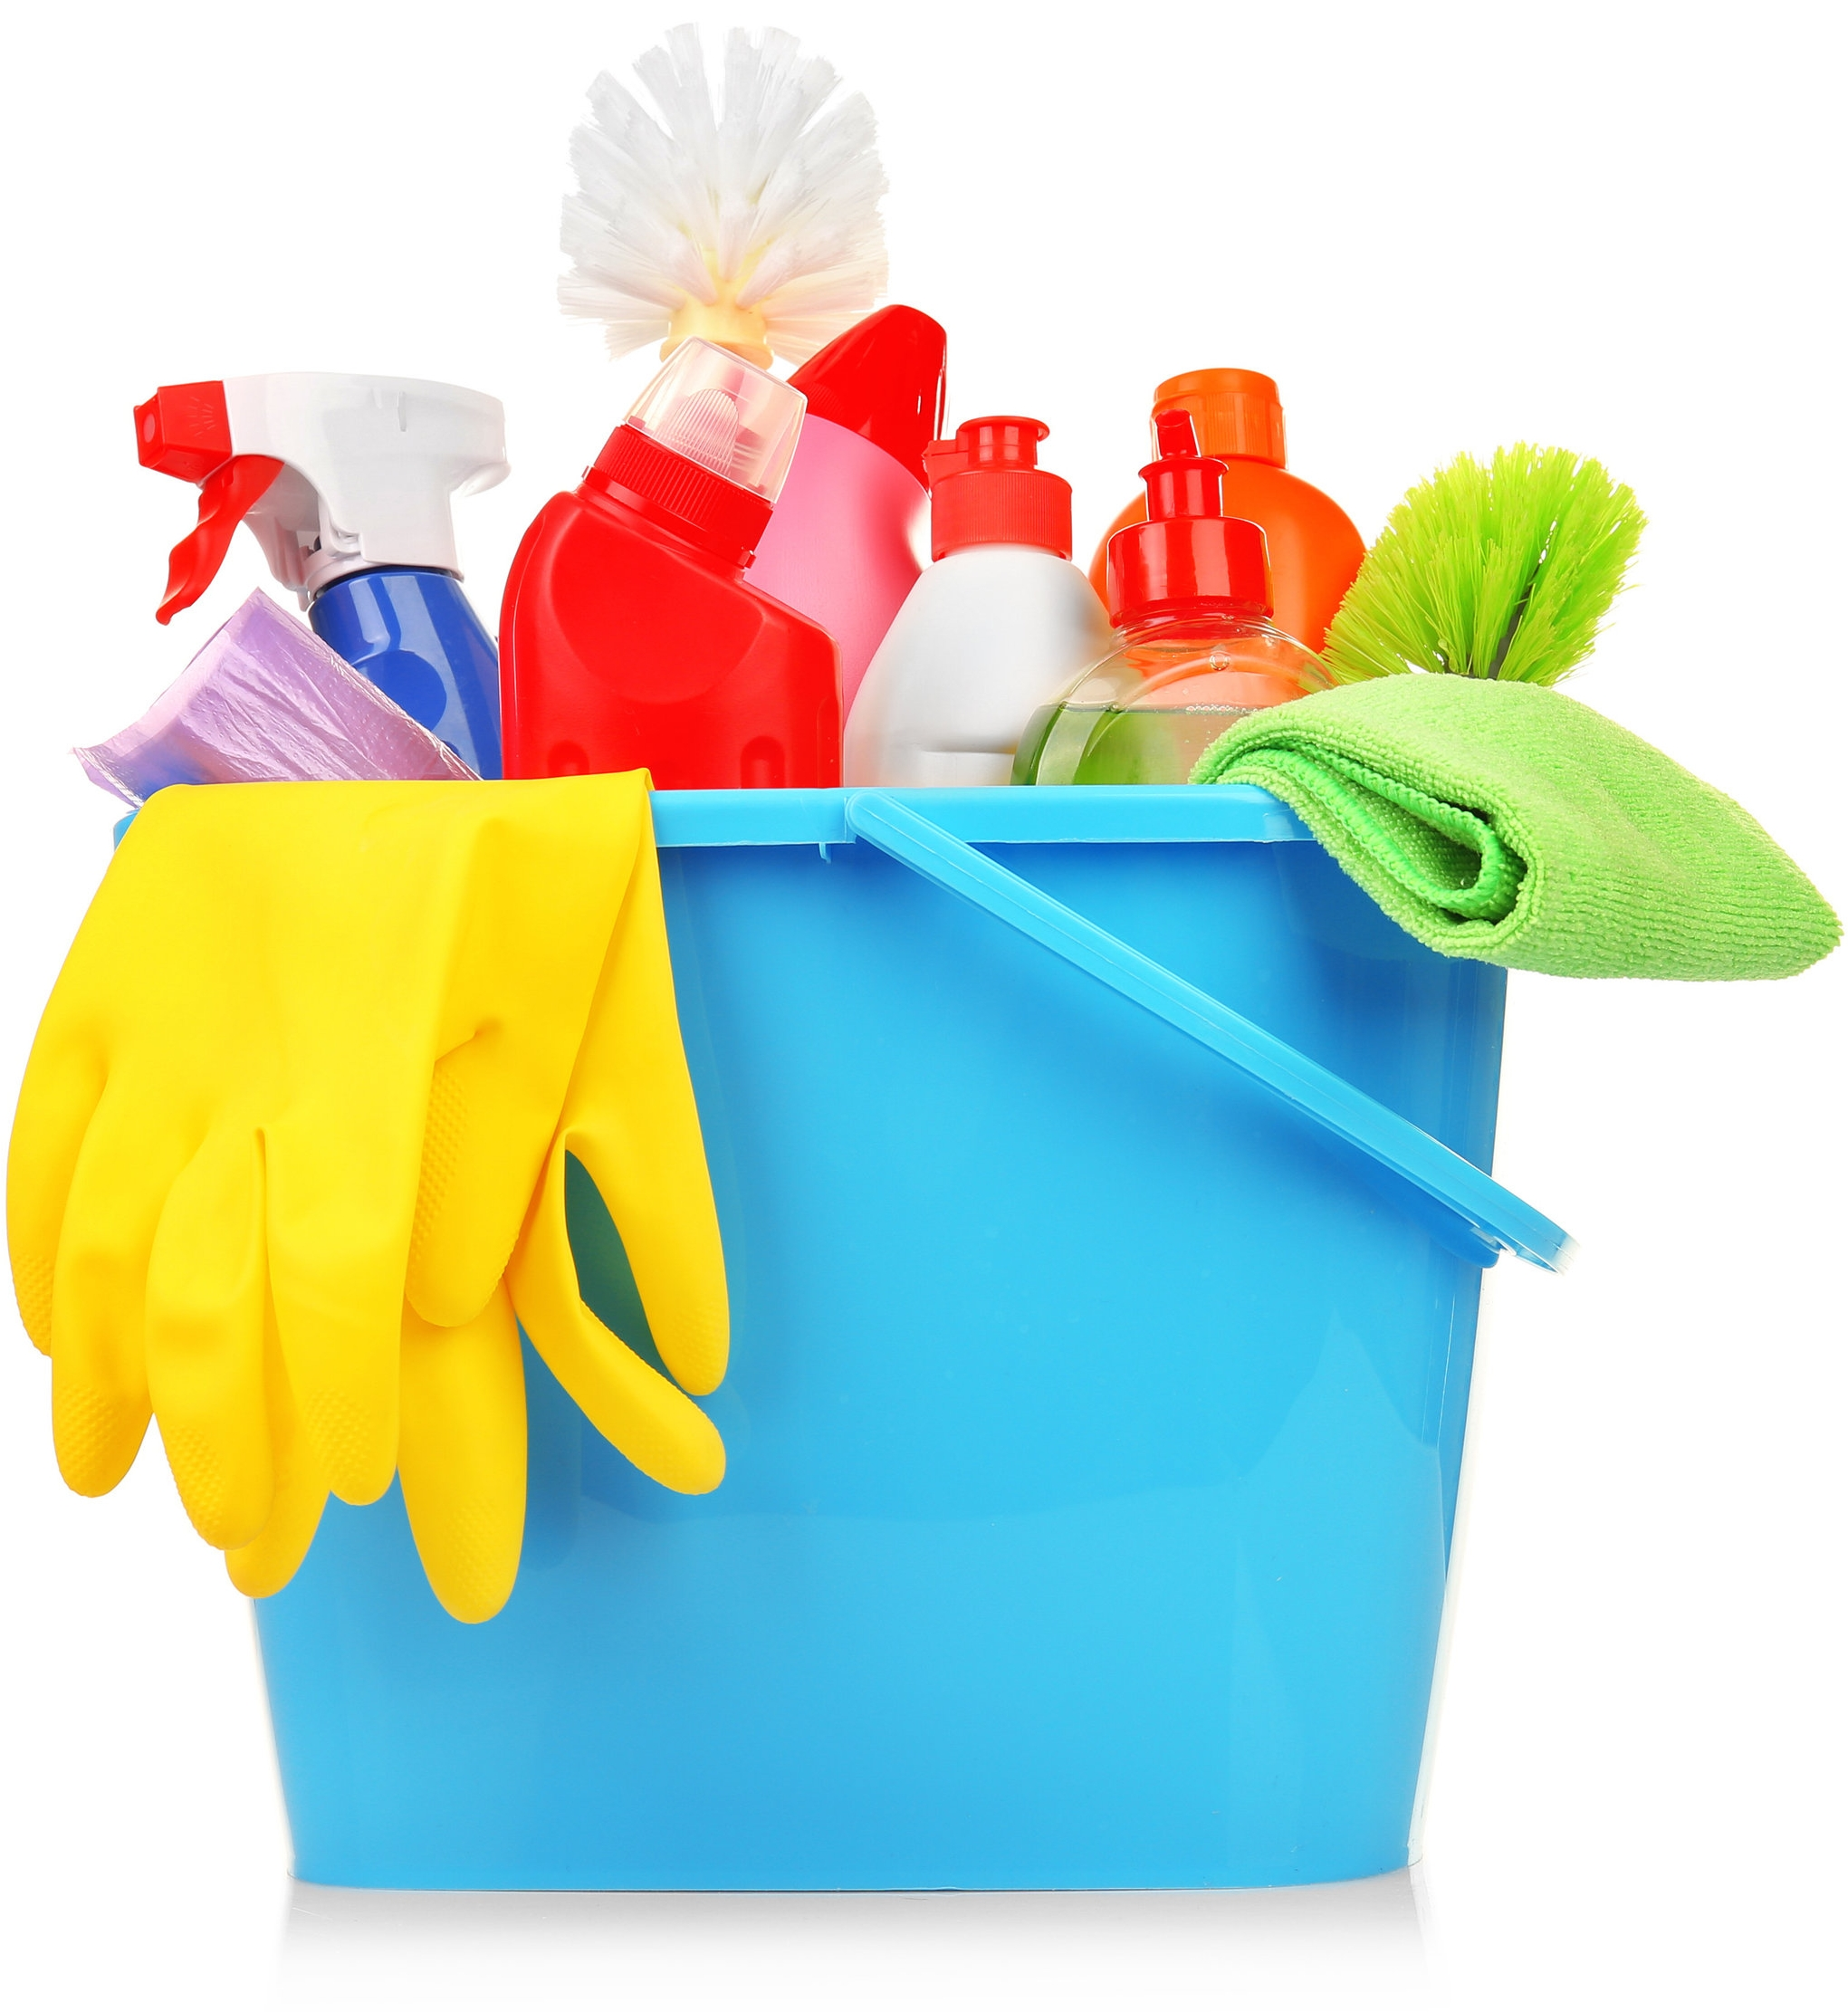 Custom-Maid-House-Cleaning-Services-Housekeeping-Oklahoma